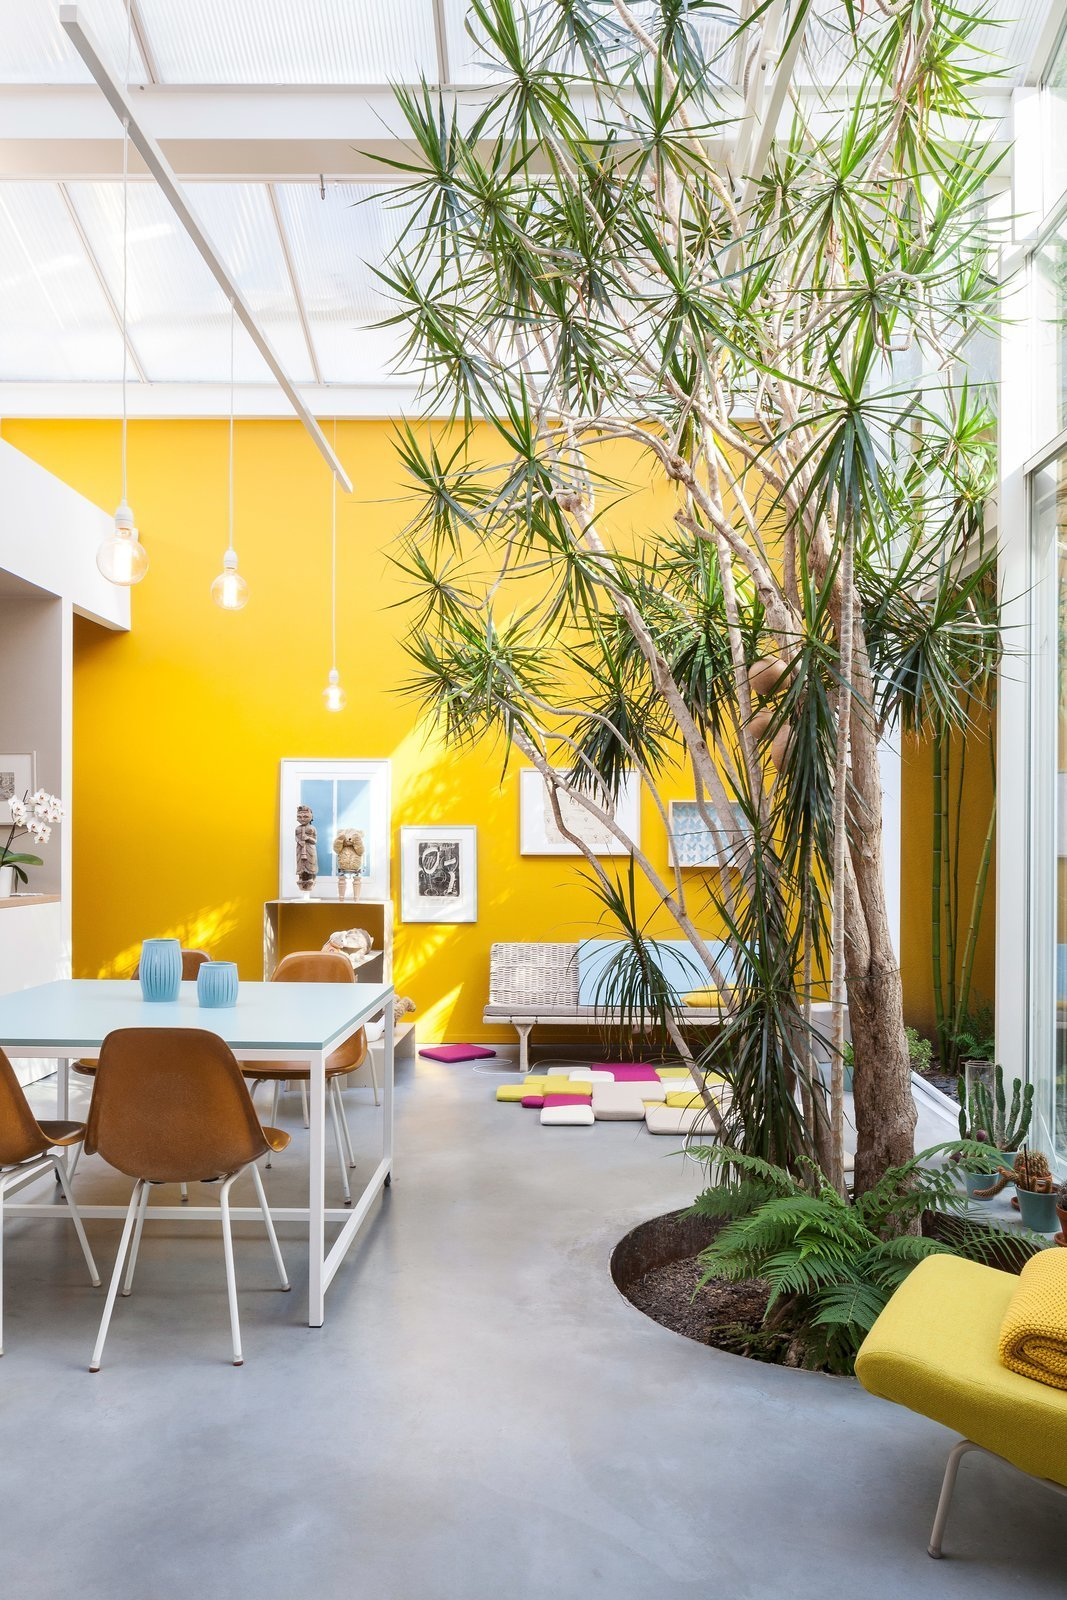 40+ Yellow Modern Home Design Ideas Collection of 44 ...